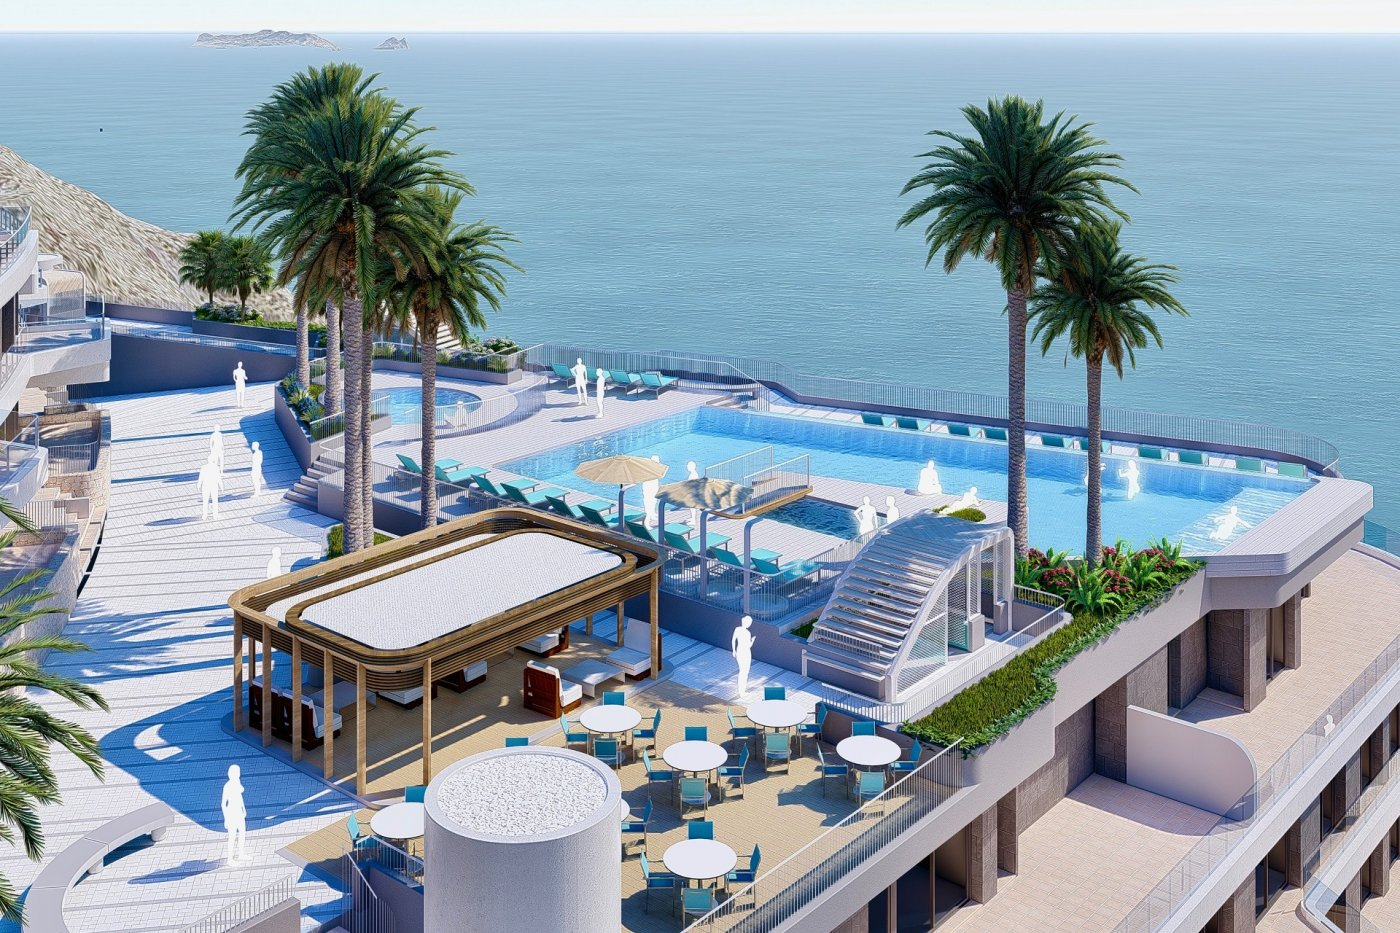 Image 7 Apartment ref 3265-03120 for sale in Isea Calma Spain - Quality Homes Costa Cálida